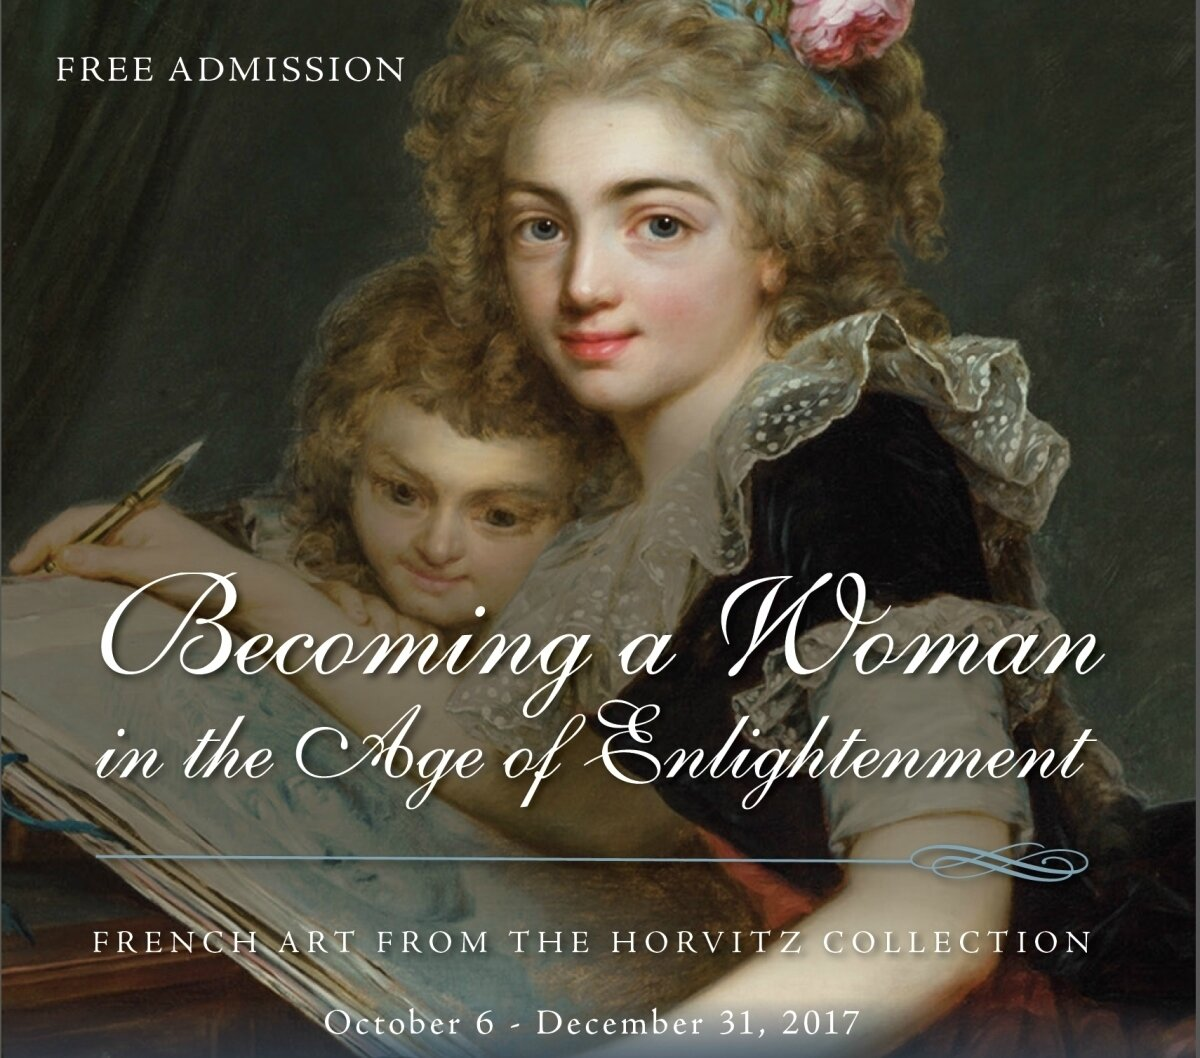 Harn Museum of Art displays French art featuring women in the 18th - early 19th centuries